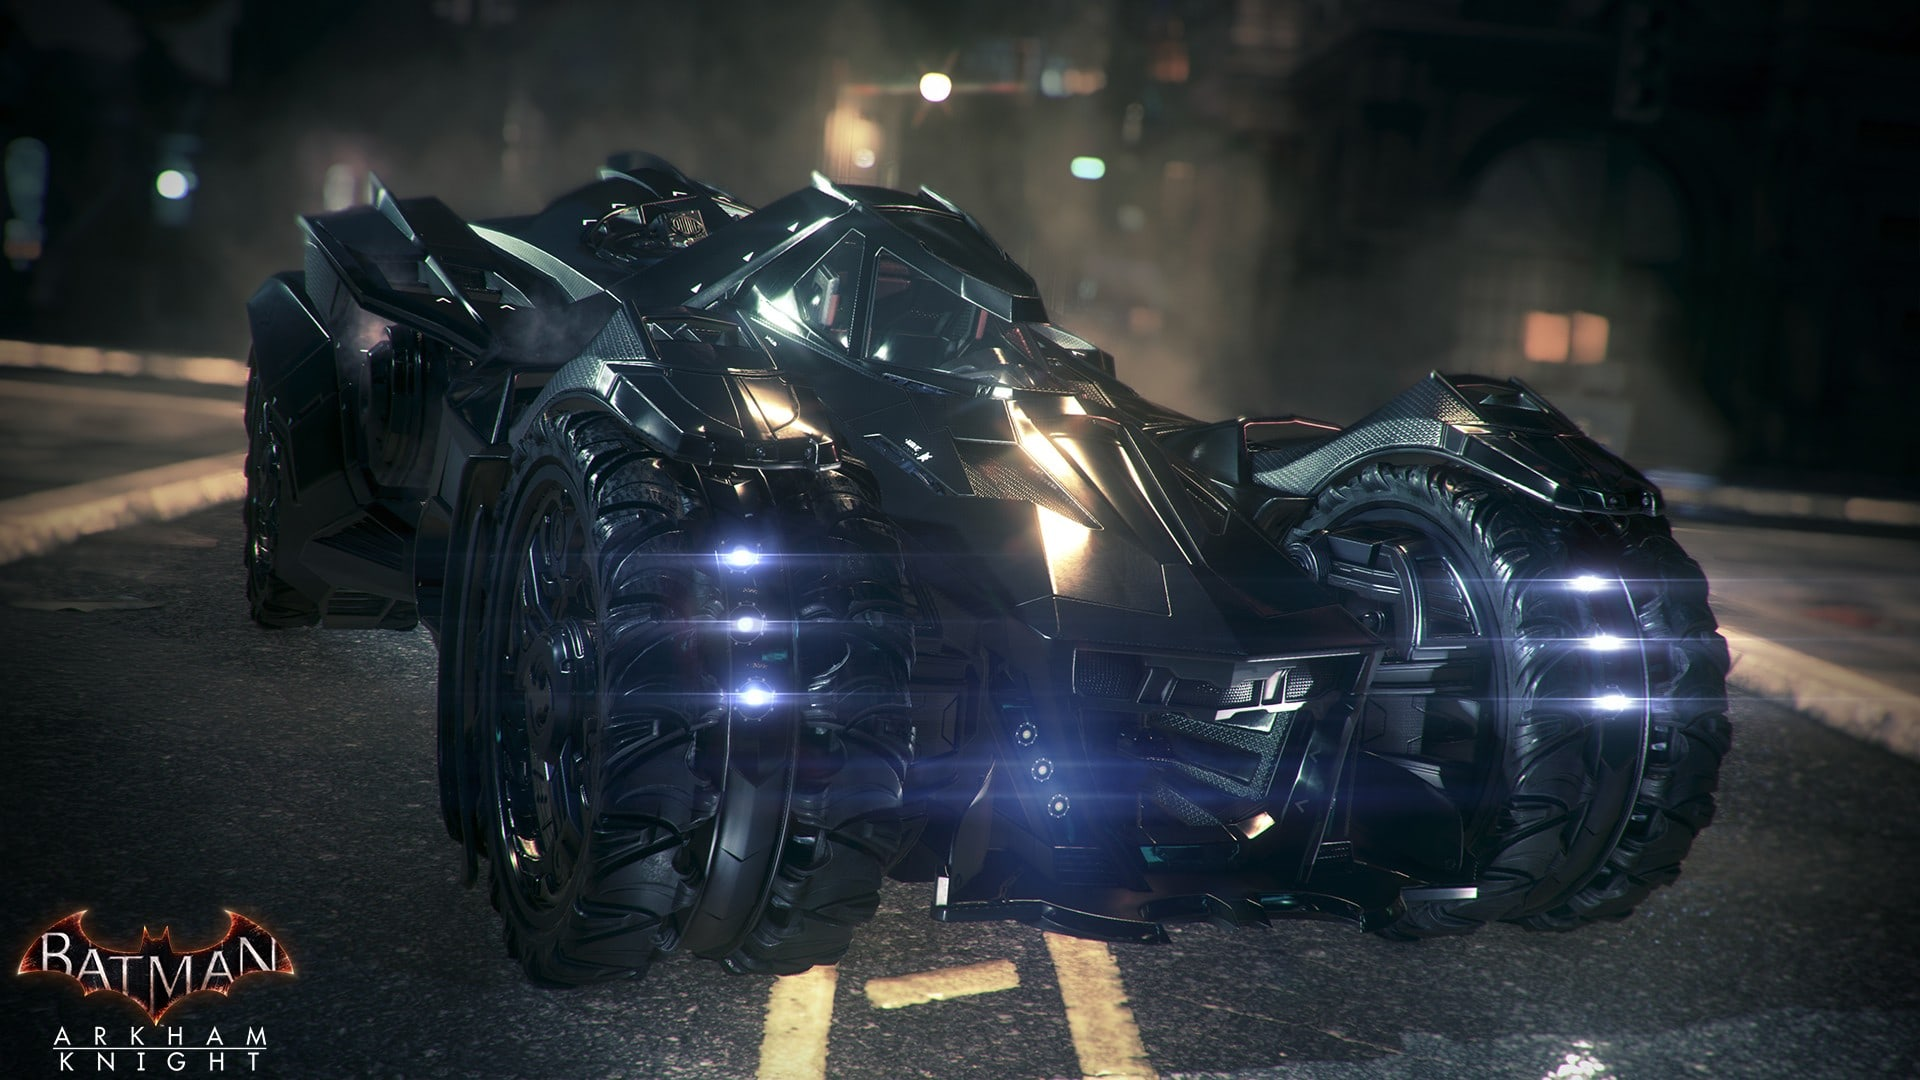 50 Set Of Batman Arkham Knight Wallpaper 1920 X 1080 HD